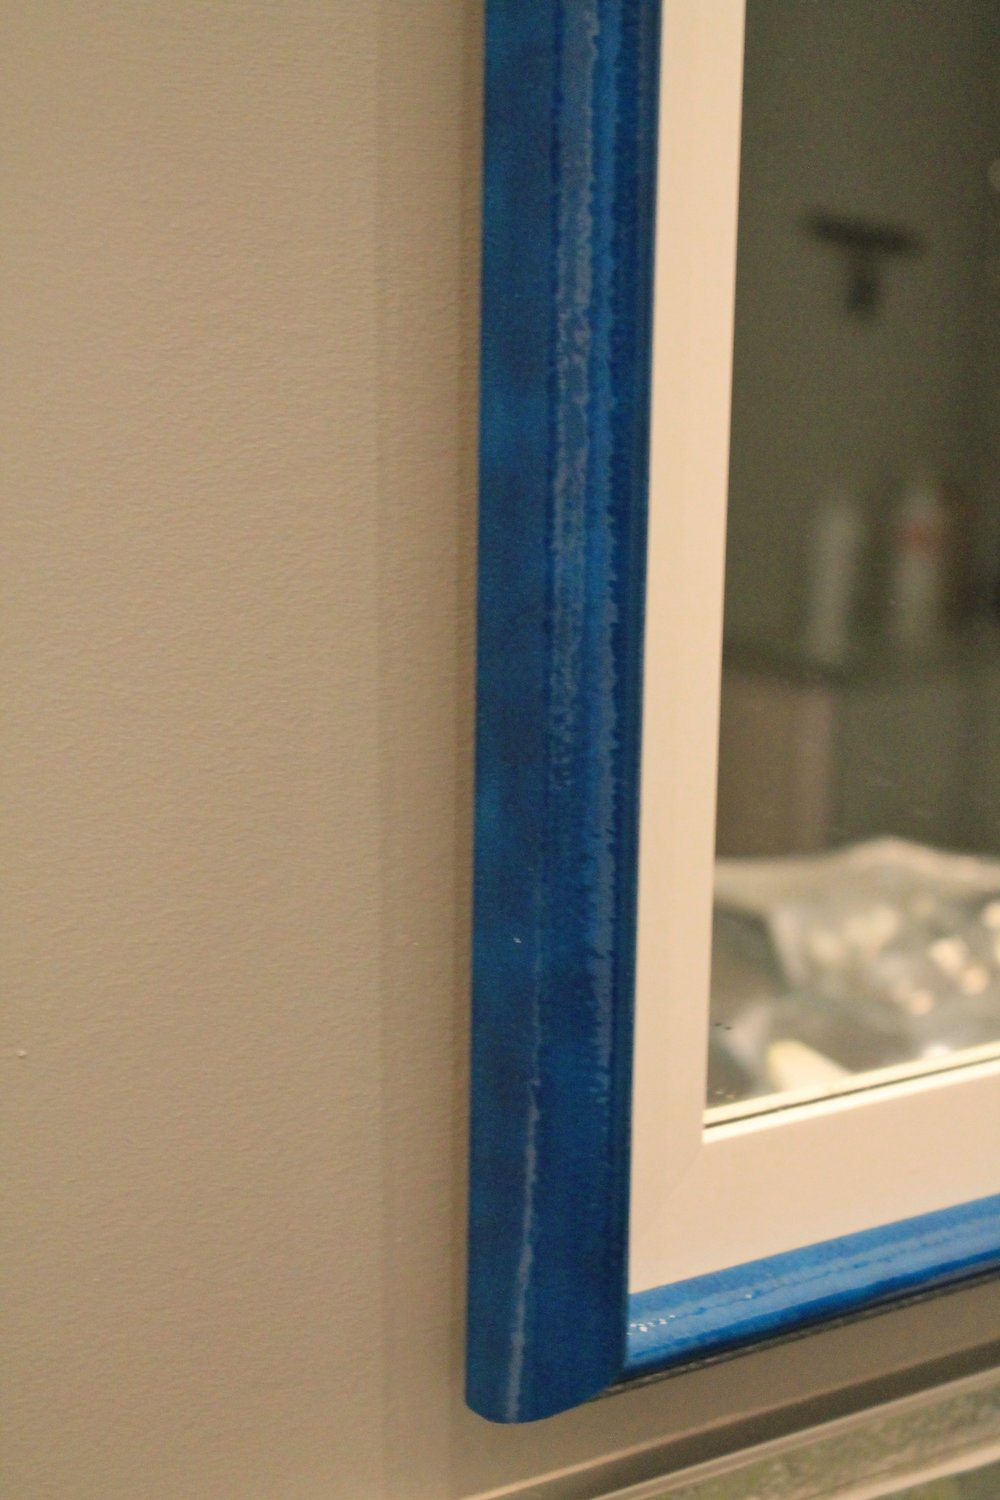 mirror frame blue.JPG